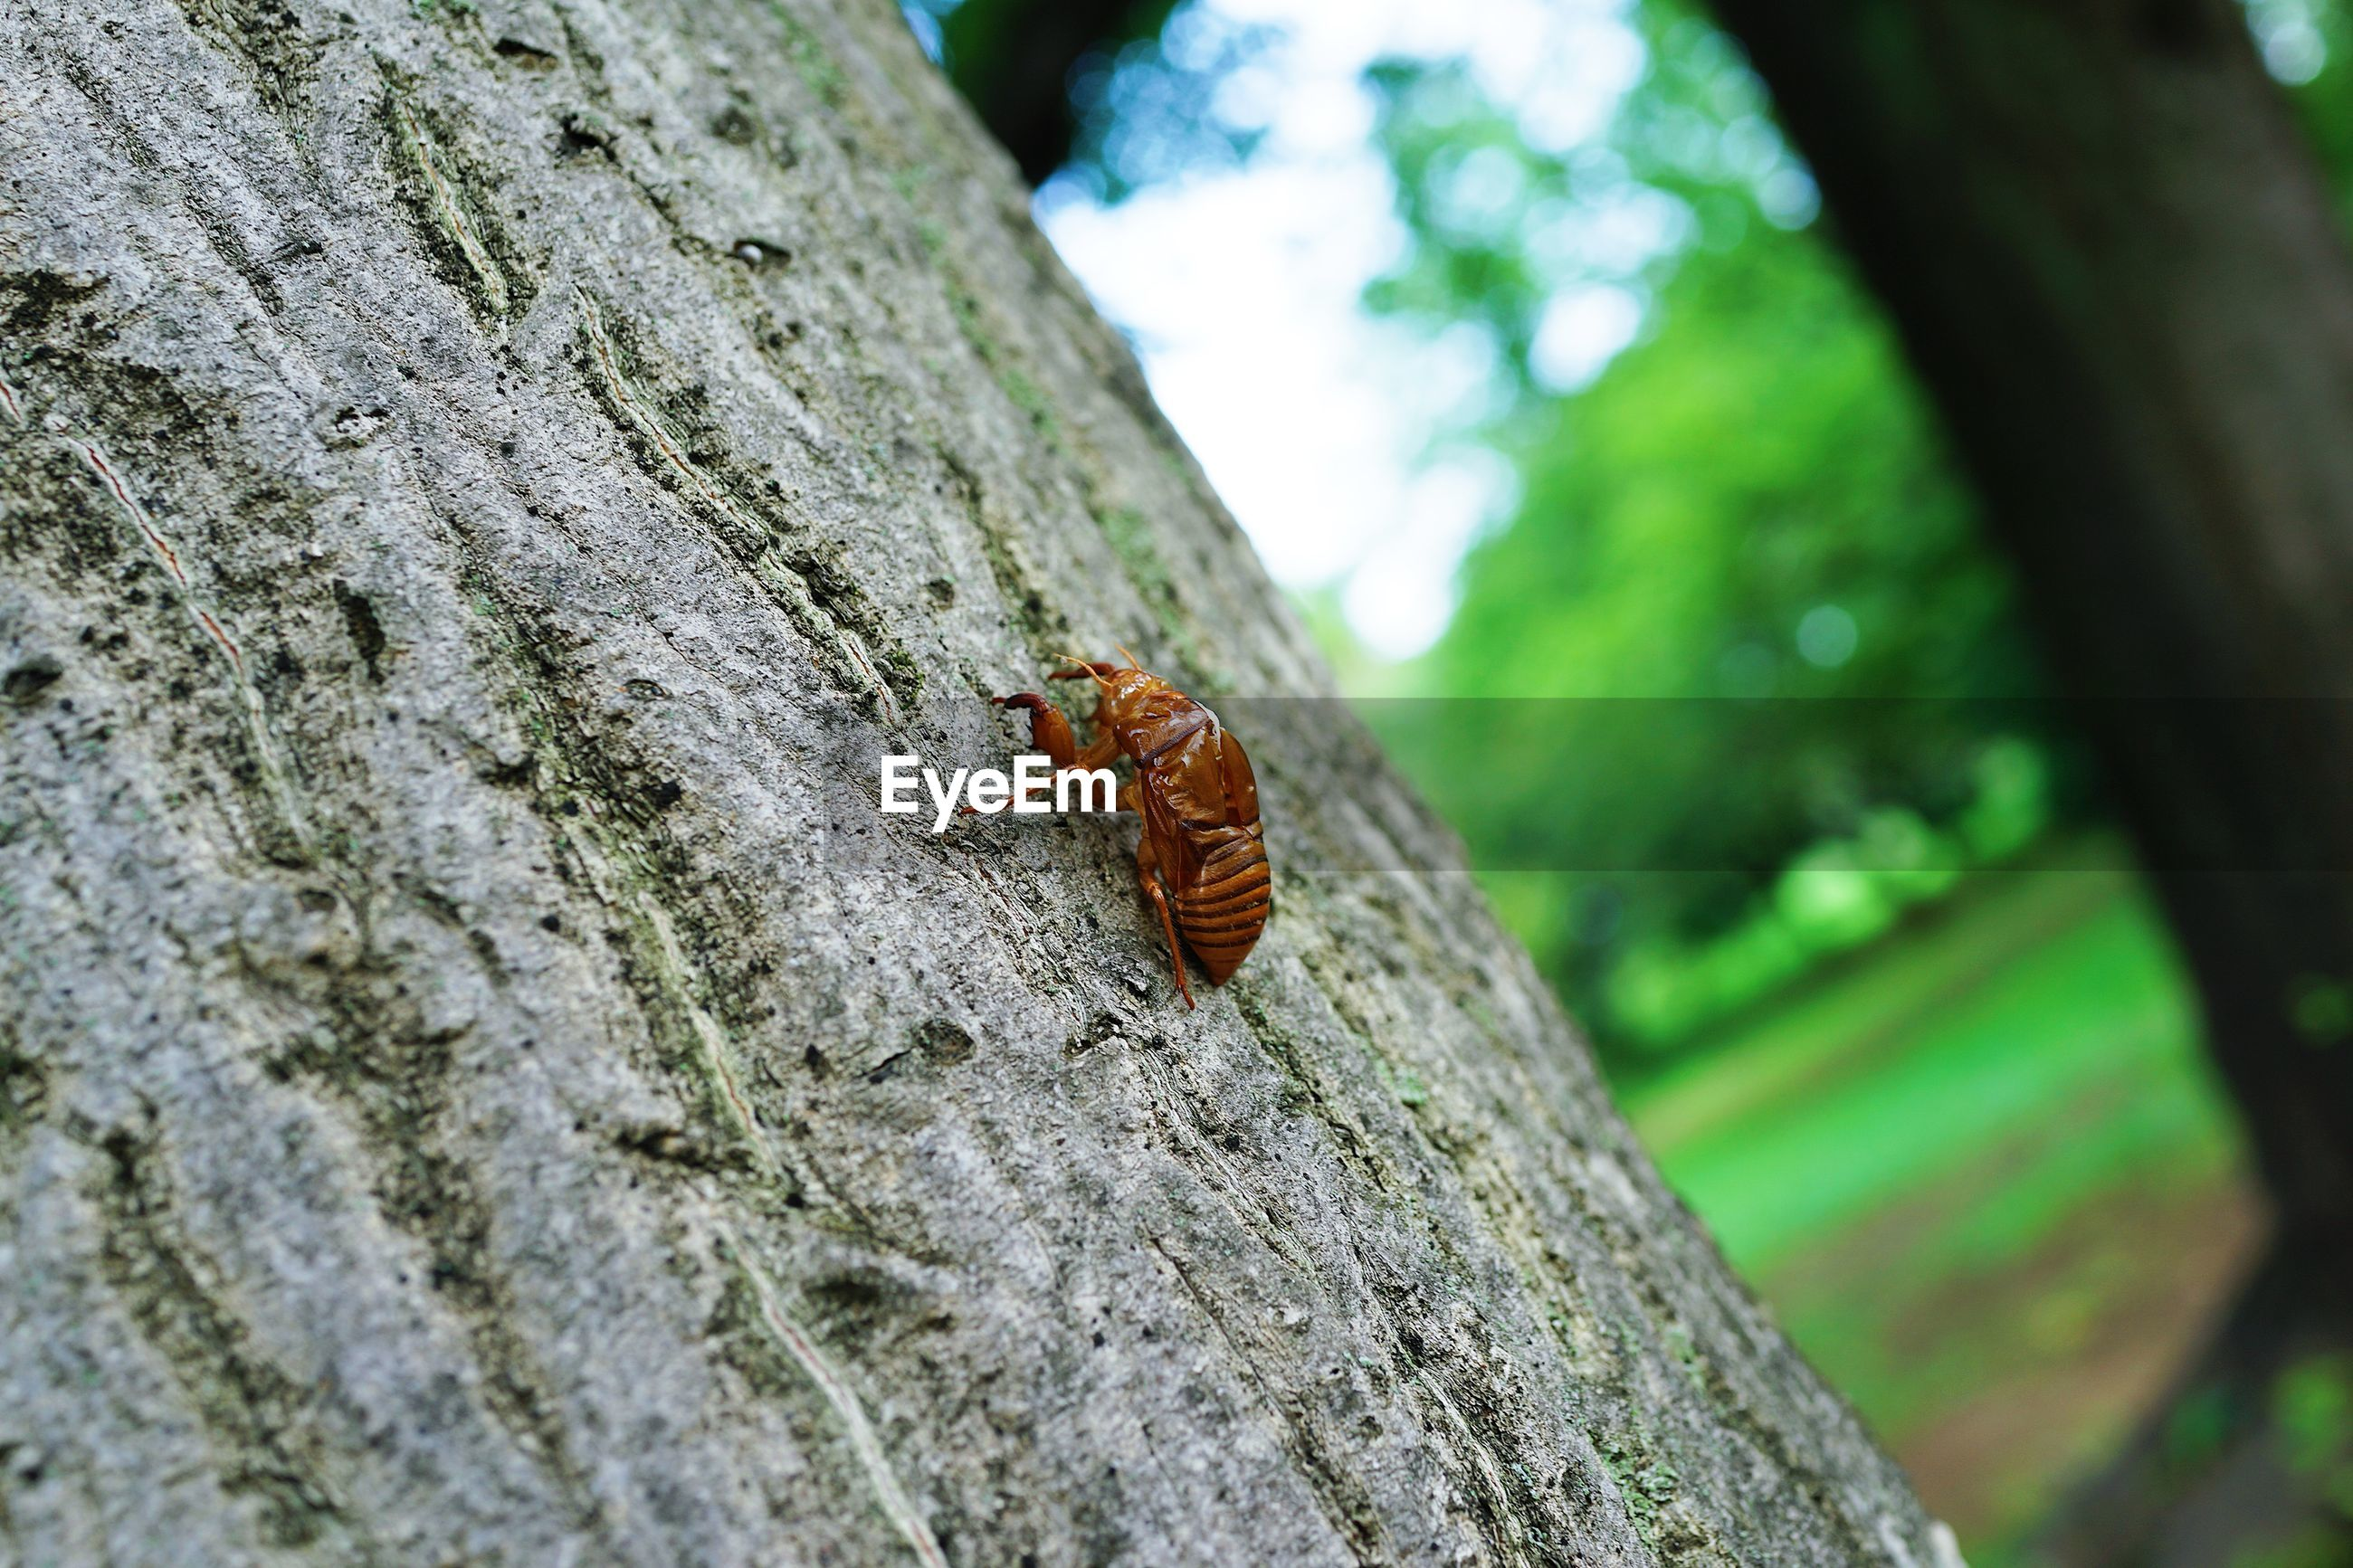 CLOSE-UP OF INSECT ON TREE